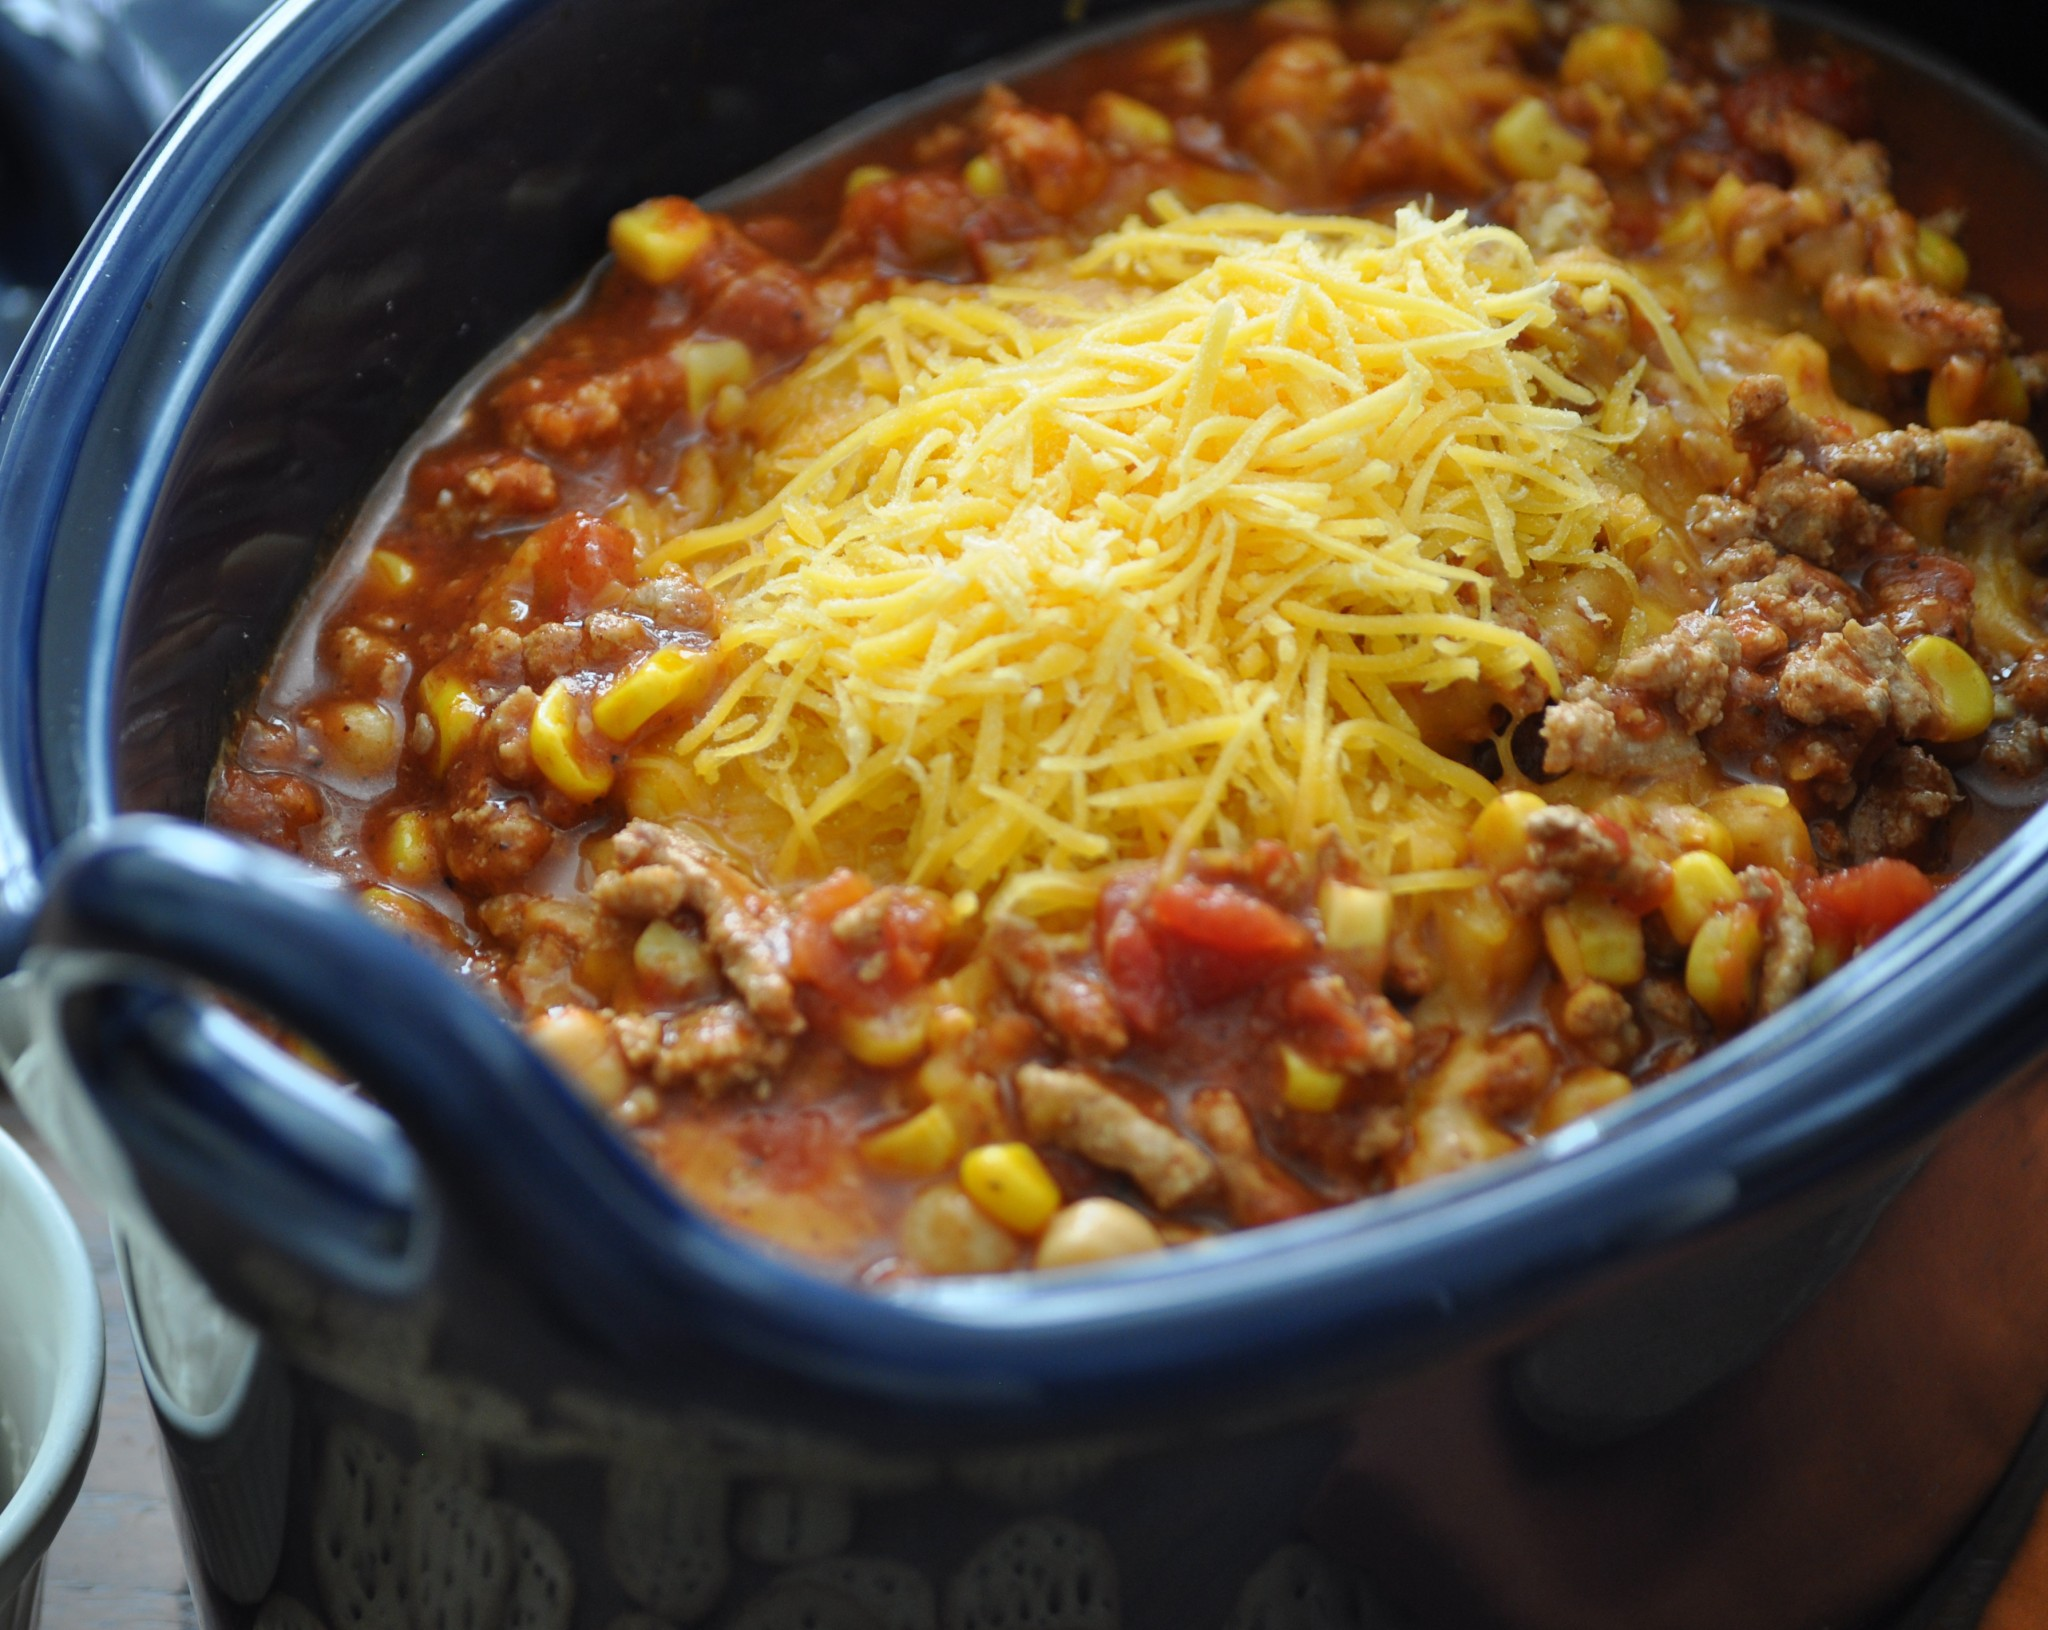 This turkey chili crockpot recipe is easy to make, perfect for gatherings, and very delicious.